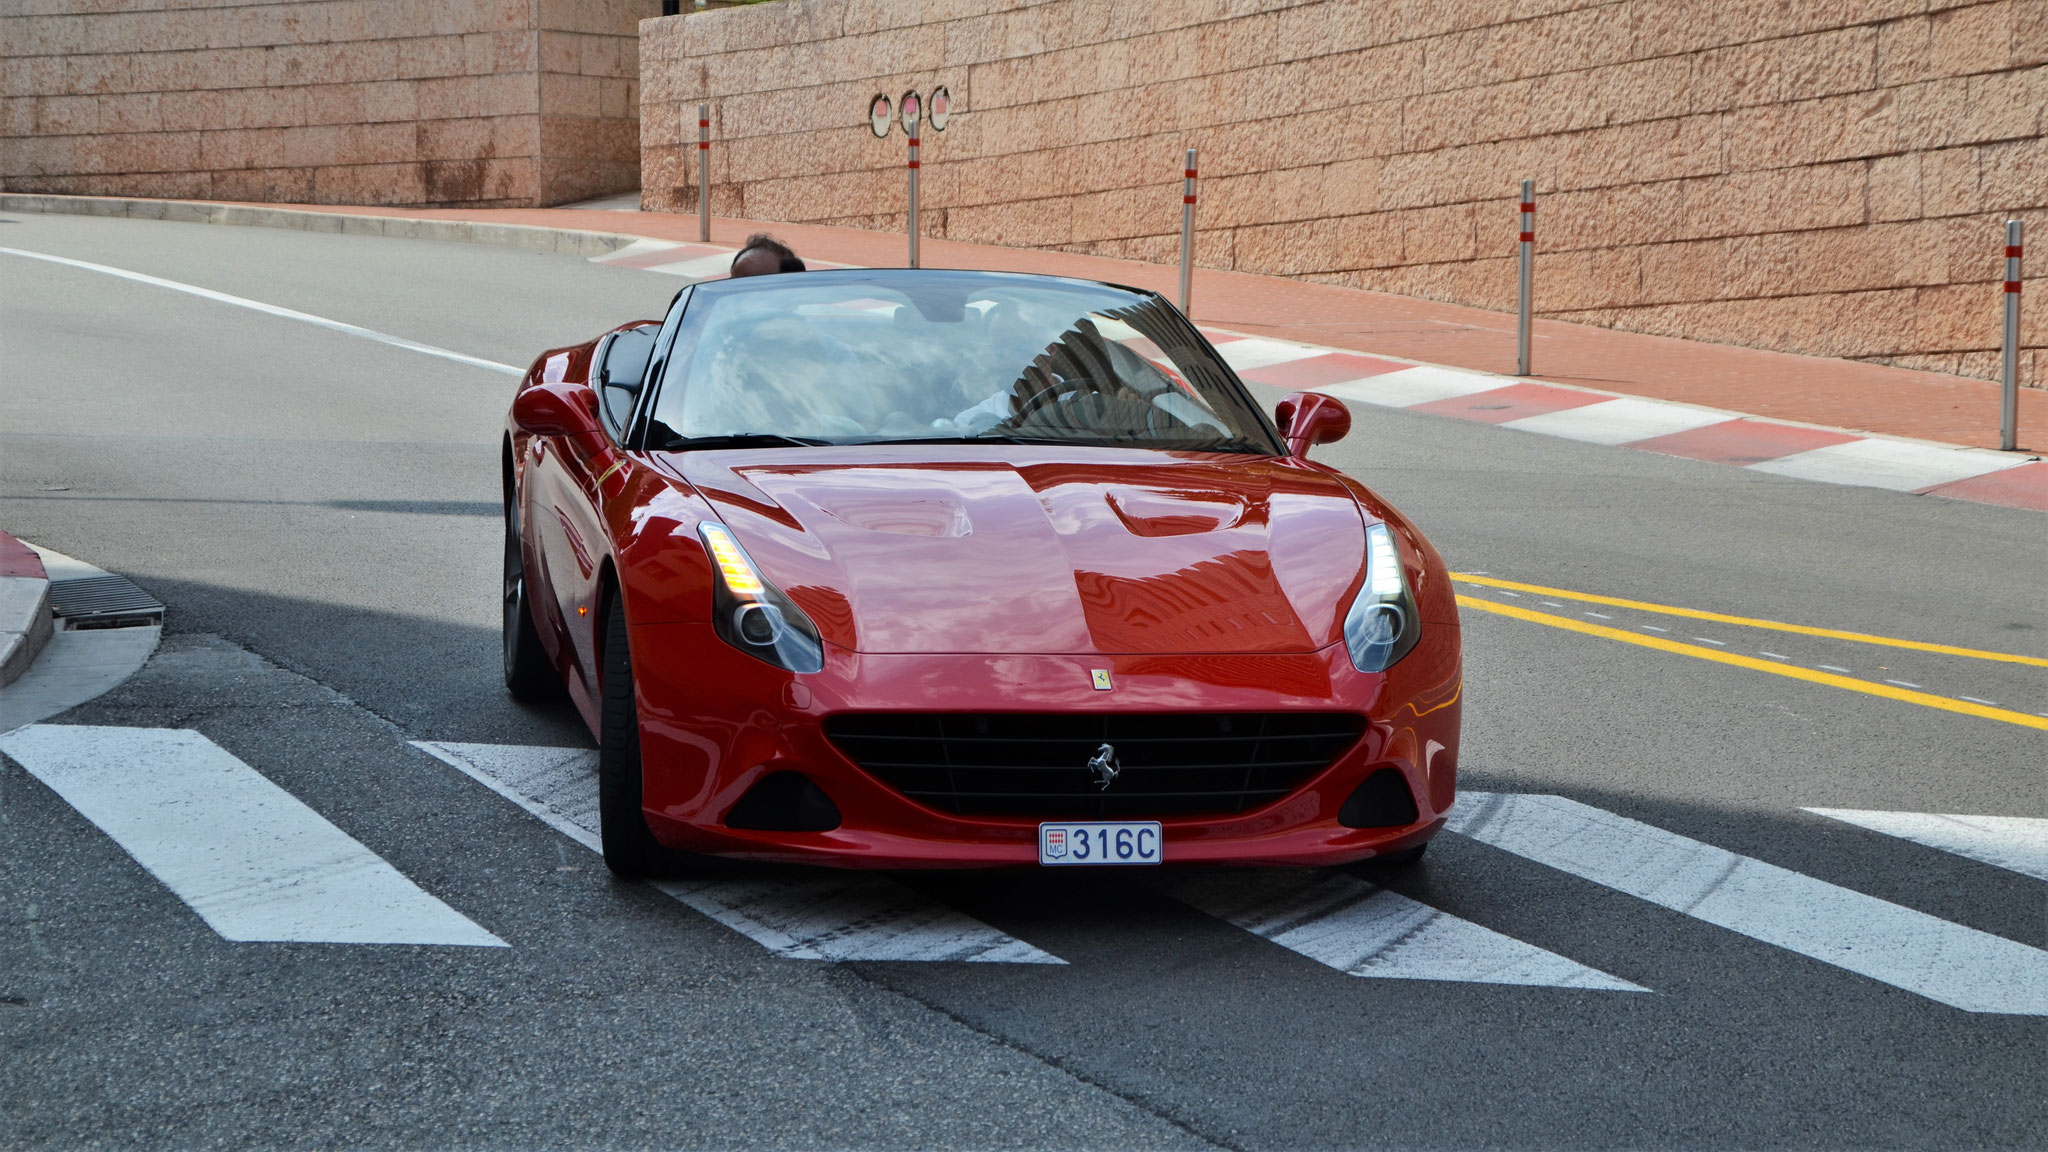 Ferrari California T - 316C (MC)